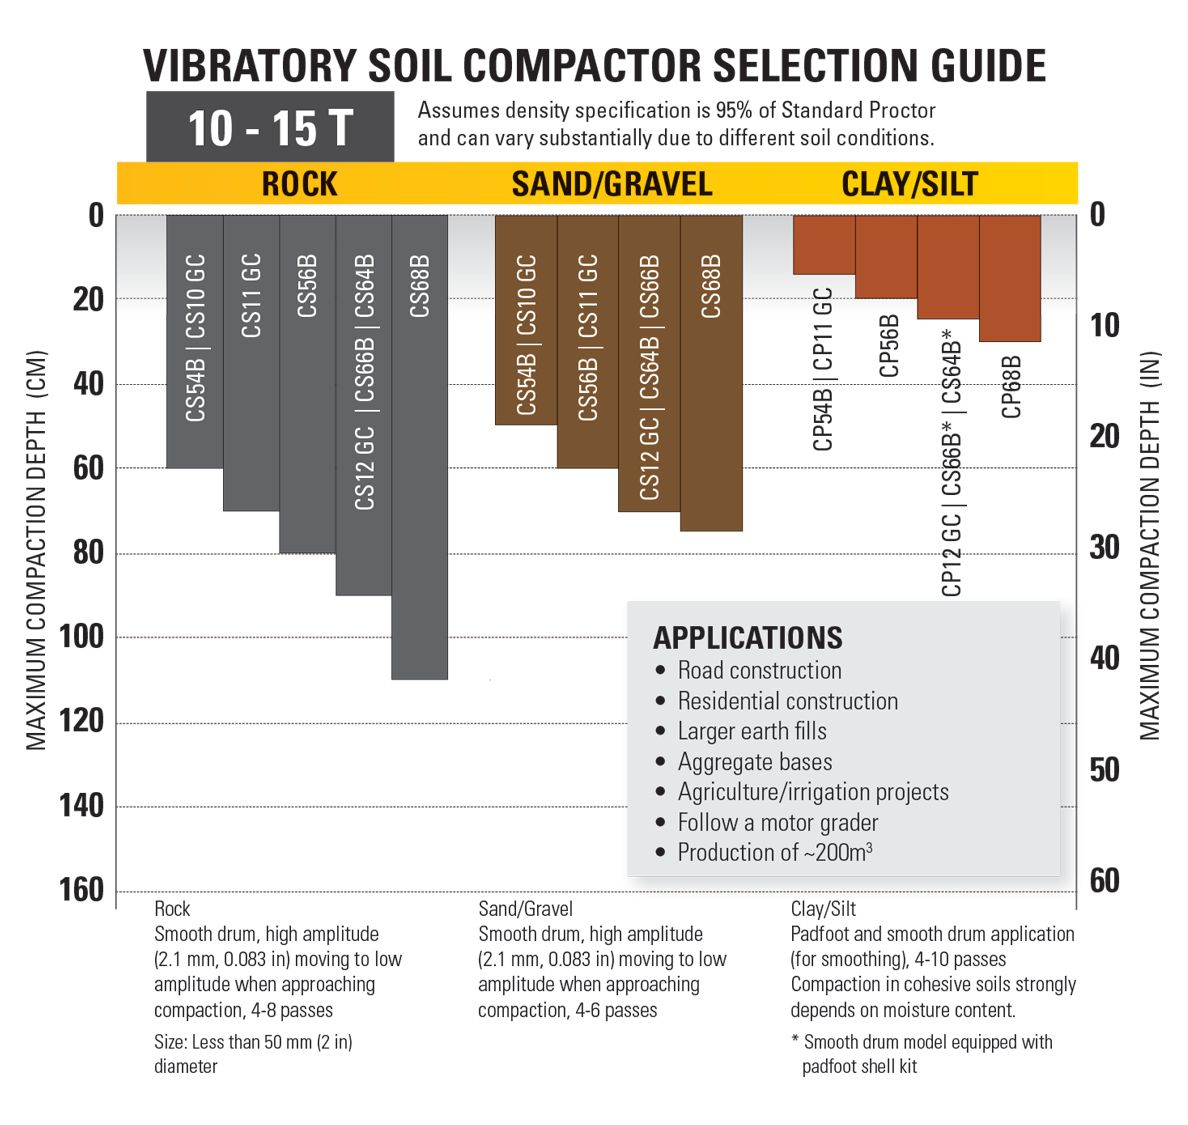 10-15T Vibratory Soil Compactor Selection Guide>